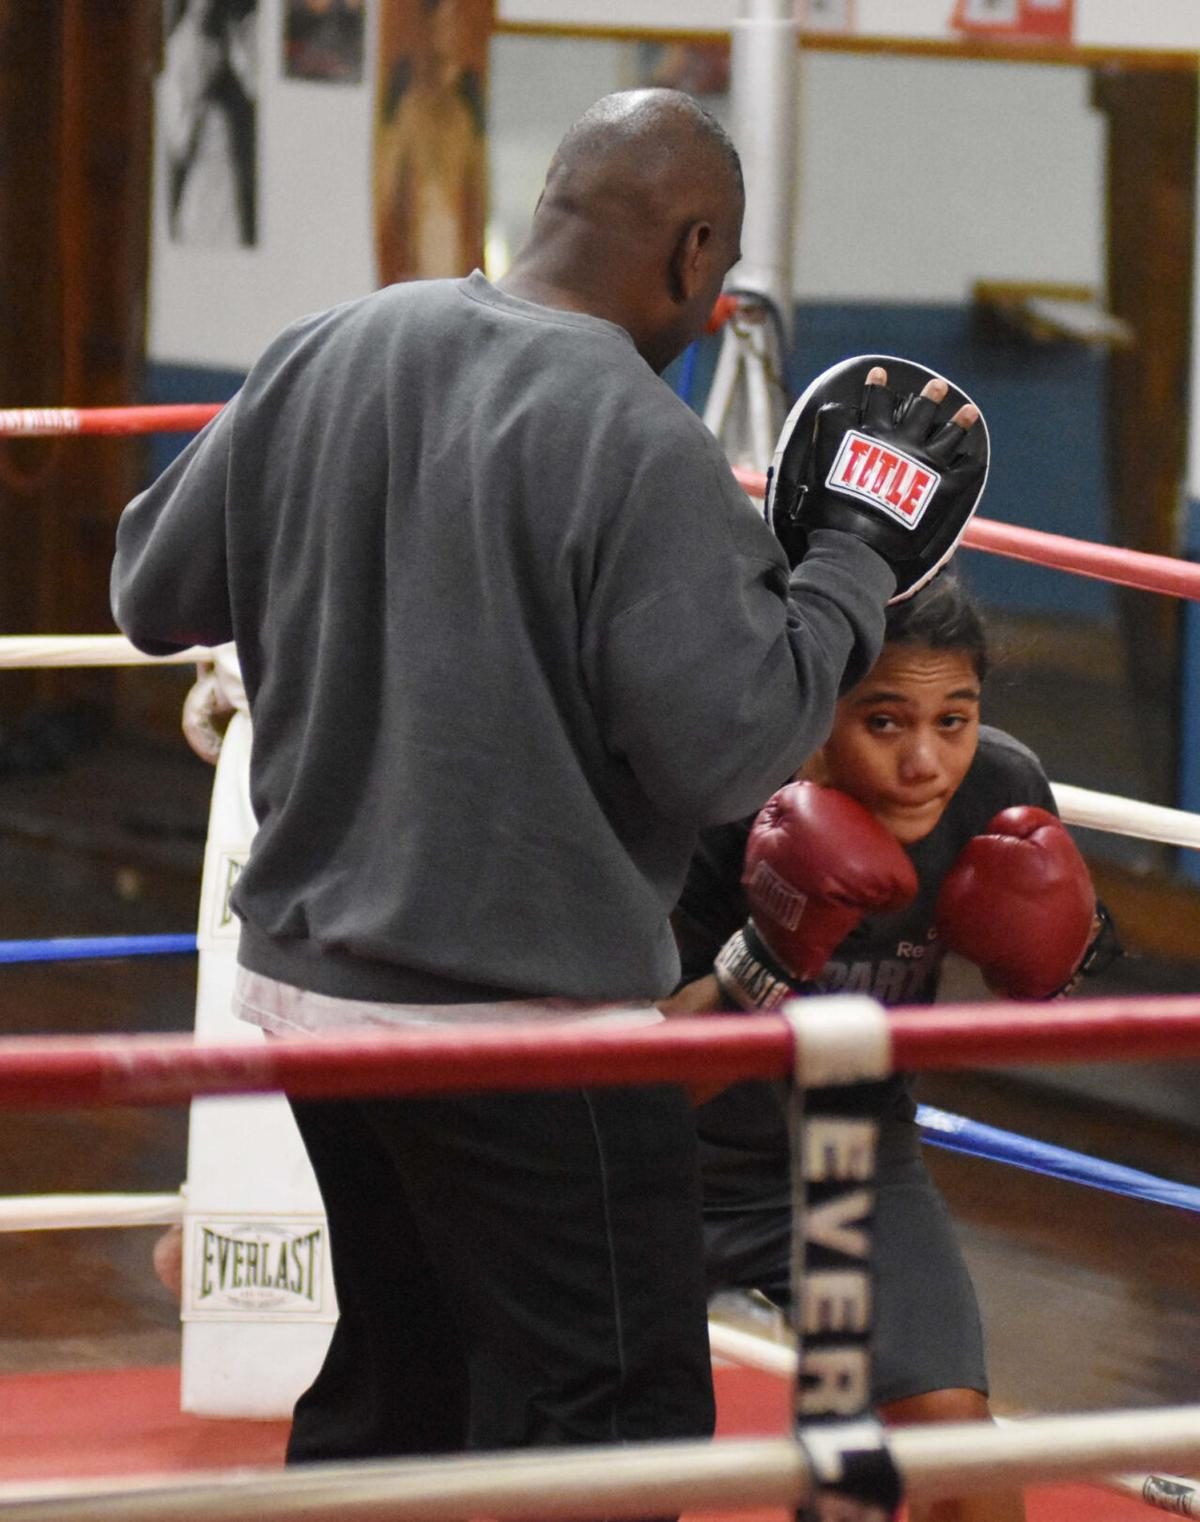 BOXING: Catskill's Faiva adds to her victory total